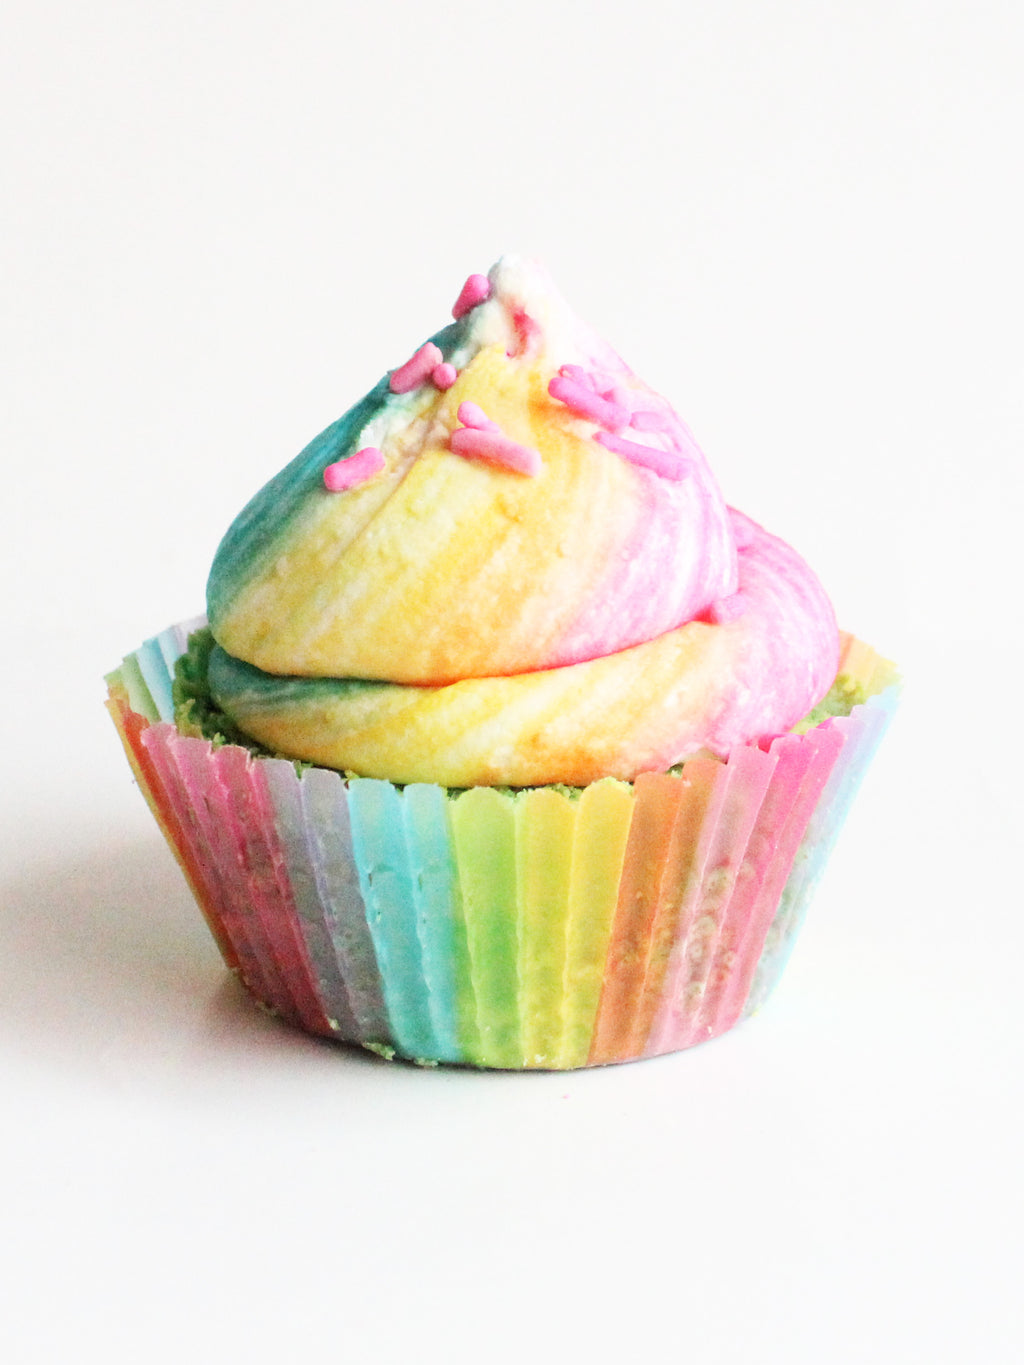 Over The Rainbow Cupcake Bath Bomb - New York's Bathhouse